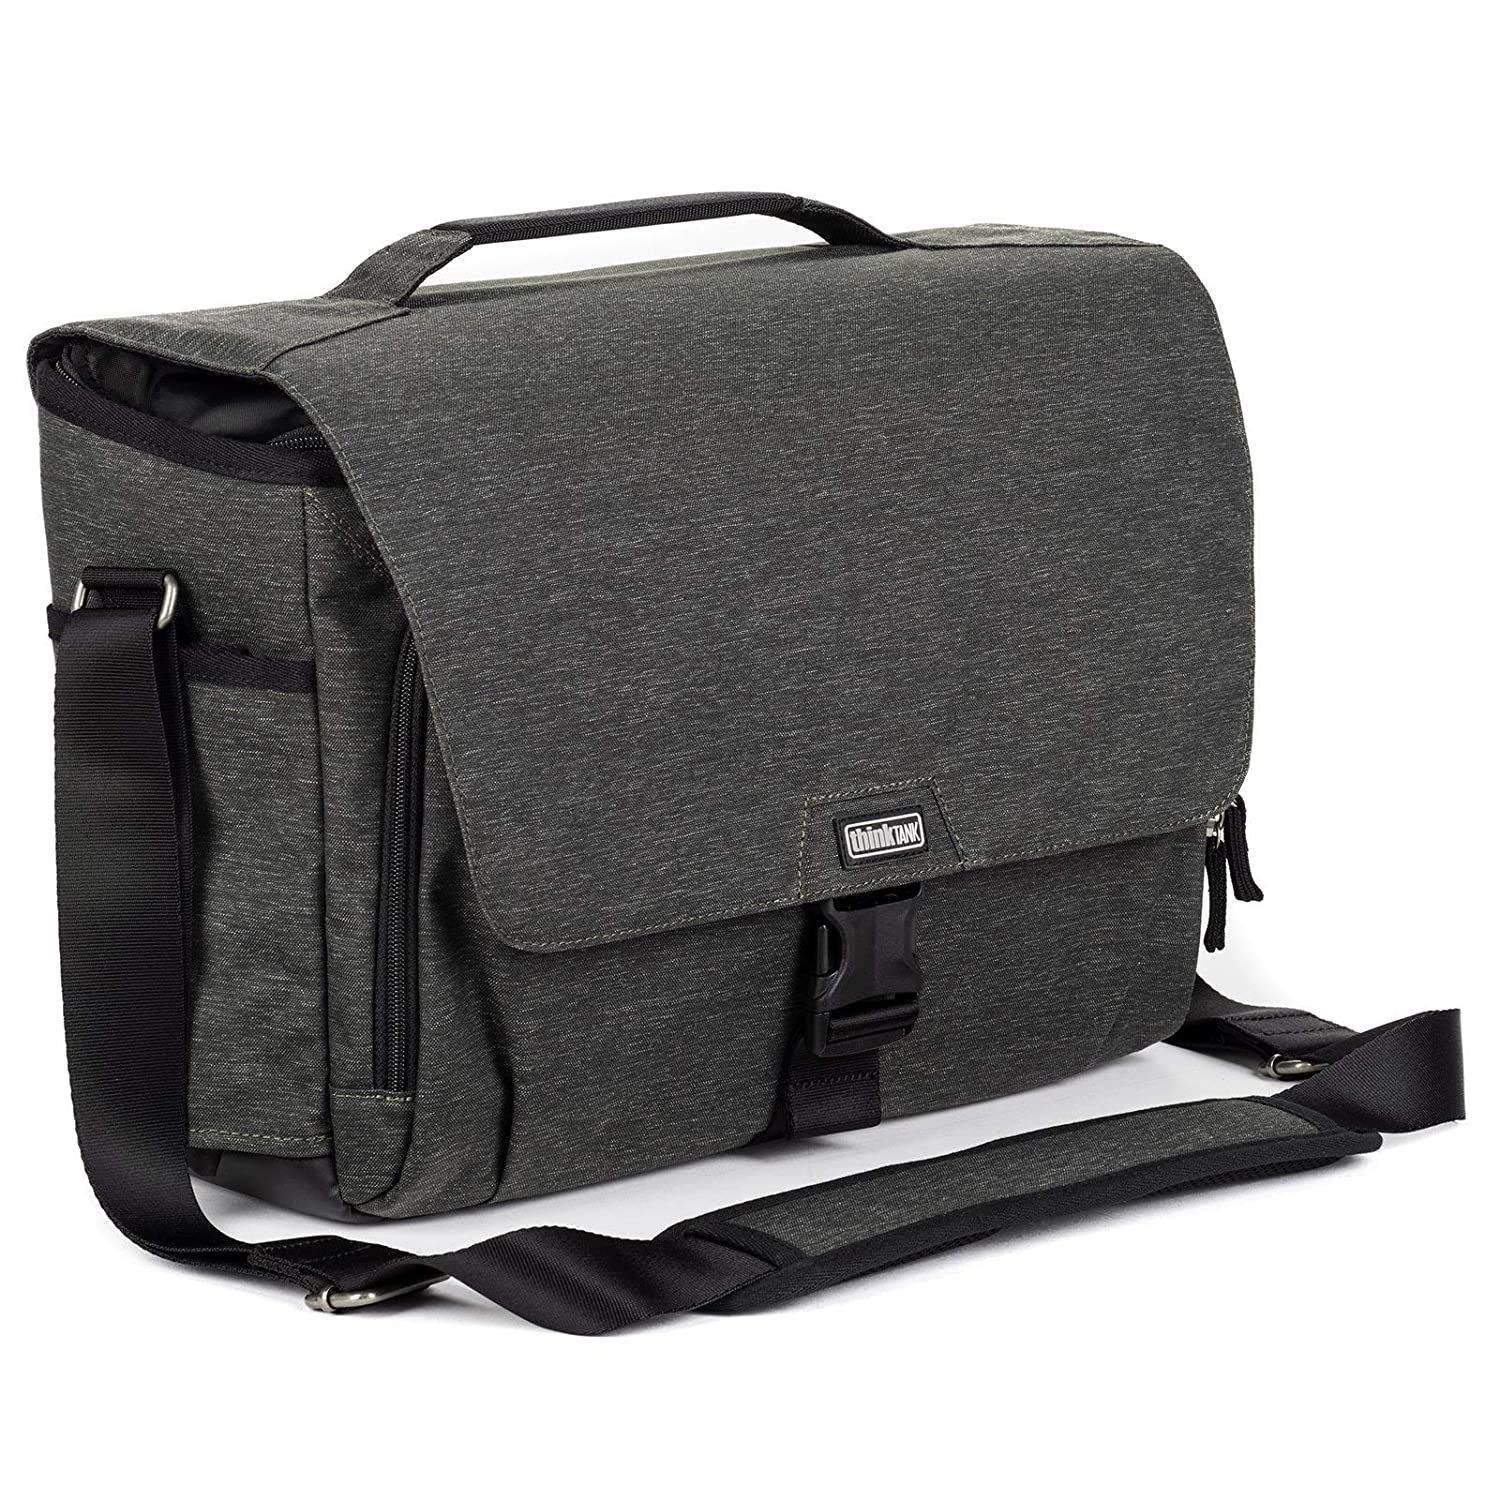 The Think Tank Photo Vision 15 travel product recommended by Jim Costa on Lifney.